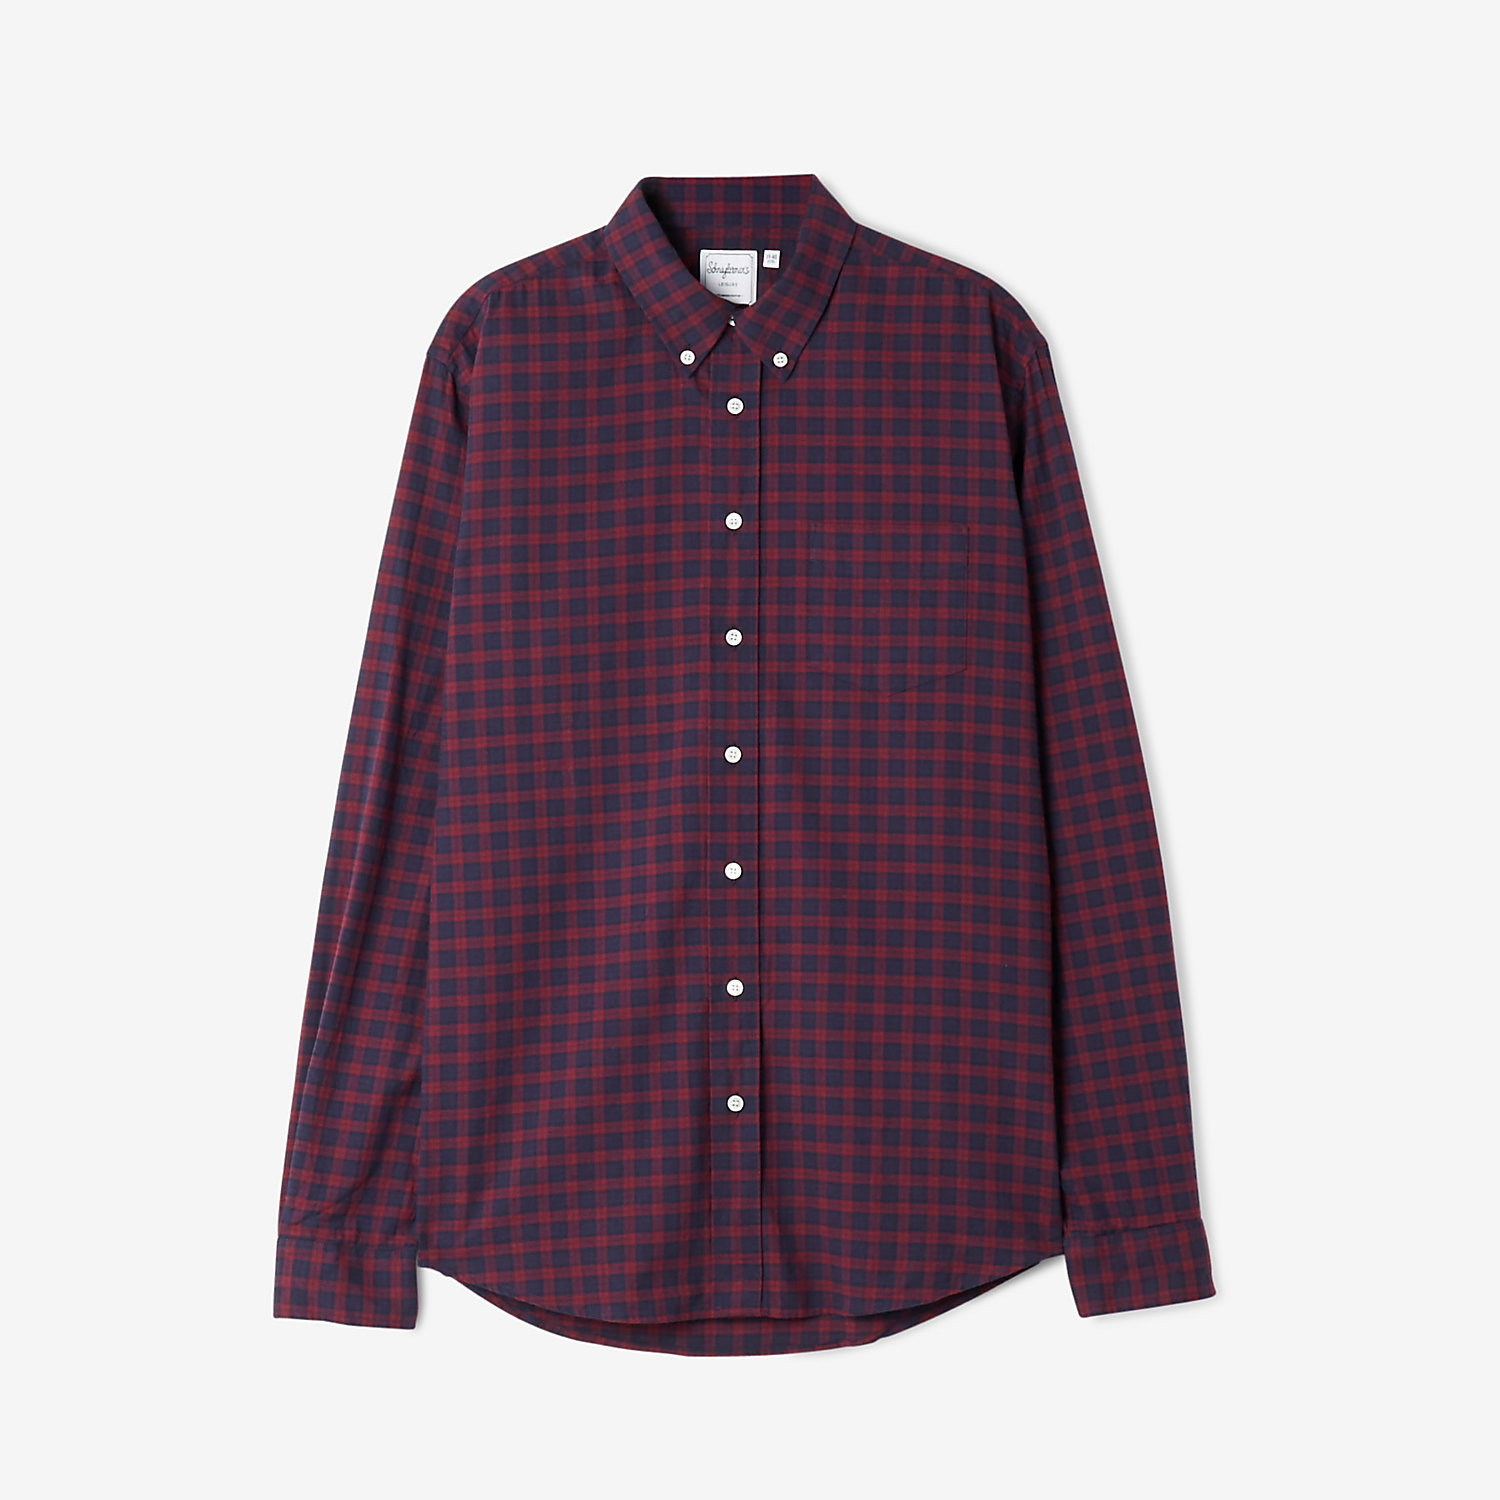 LEISURE HERRINGBONE CHECK SHIRT